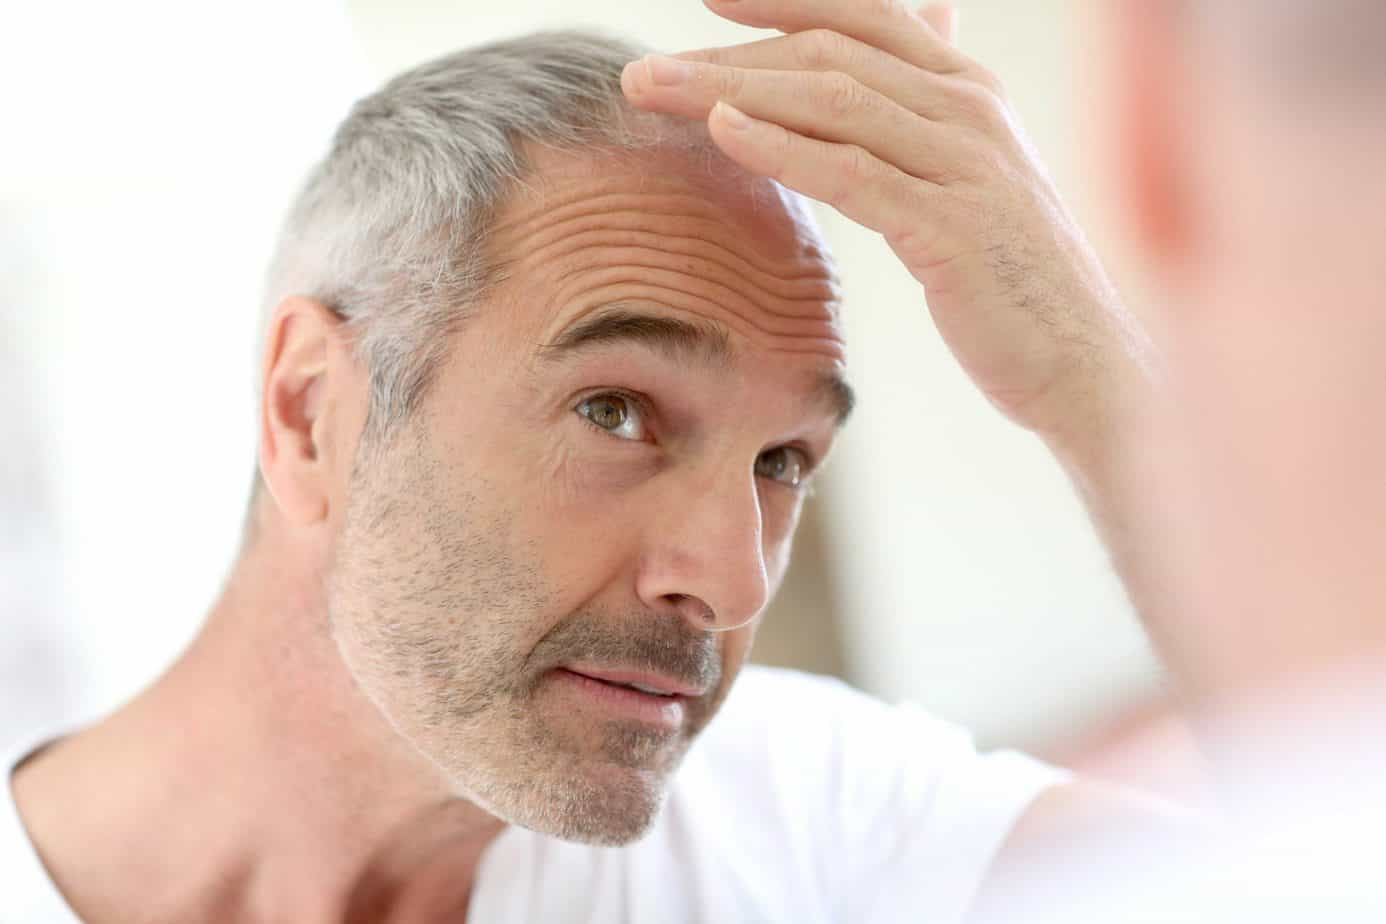 FUE & FUT – What's The Difference?